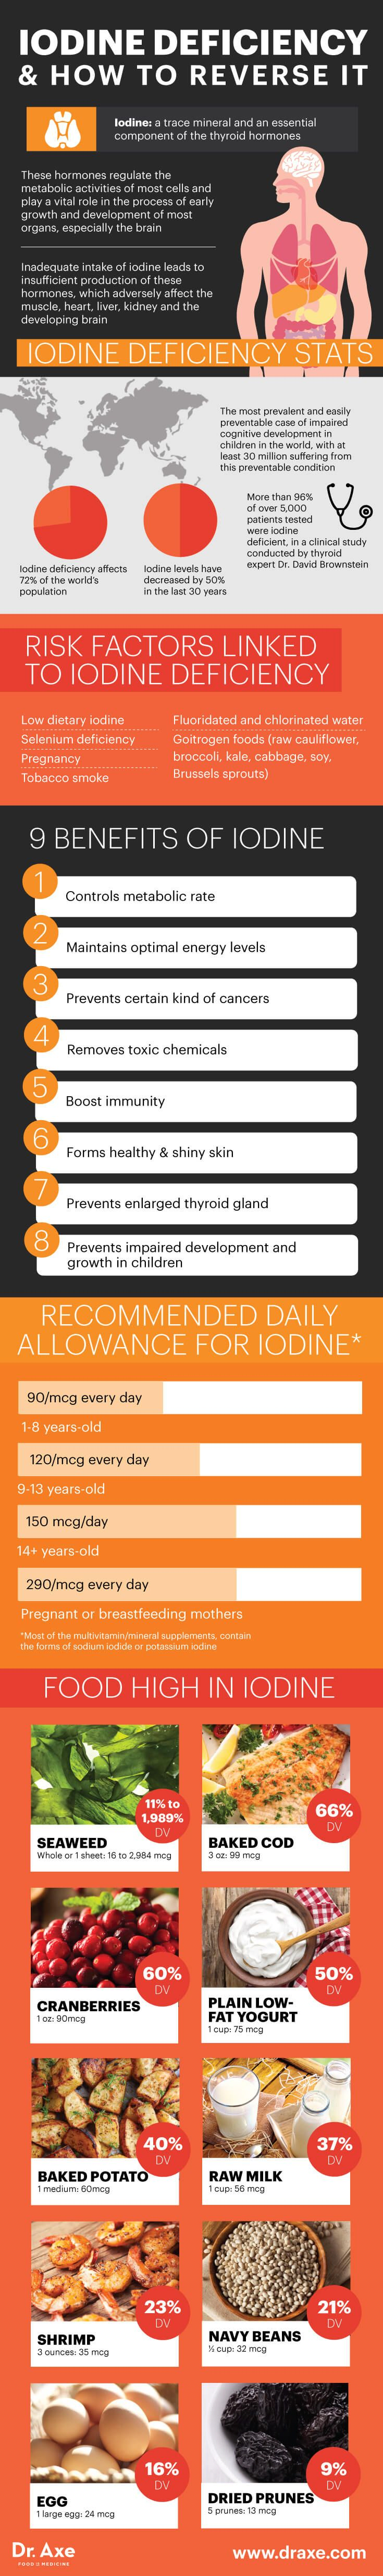 Iodine guide - Dr. Axe http://www.draxe.com #health #holistic #natural